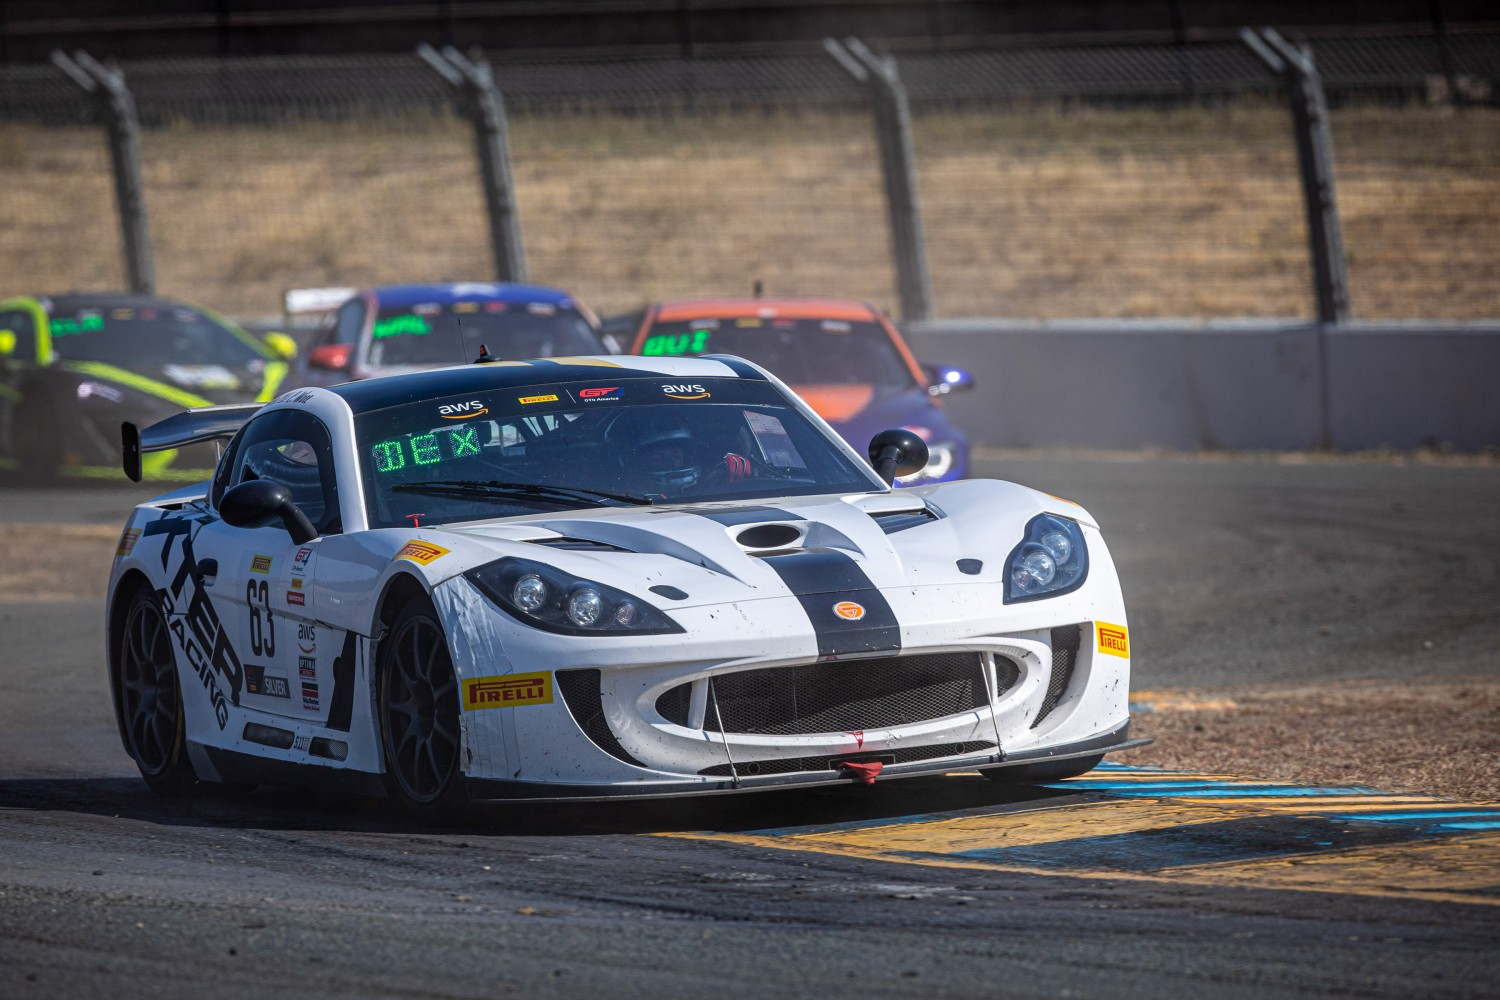 #63 Ginetta G55 of Cody Ware and Ryan Dexter, Dexter Racing, GT4 SprintX, 2020 SRO Motorsports Group - Sonoma Raceway, Sonoma CA  | Brian Cleary